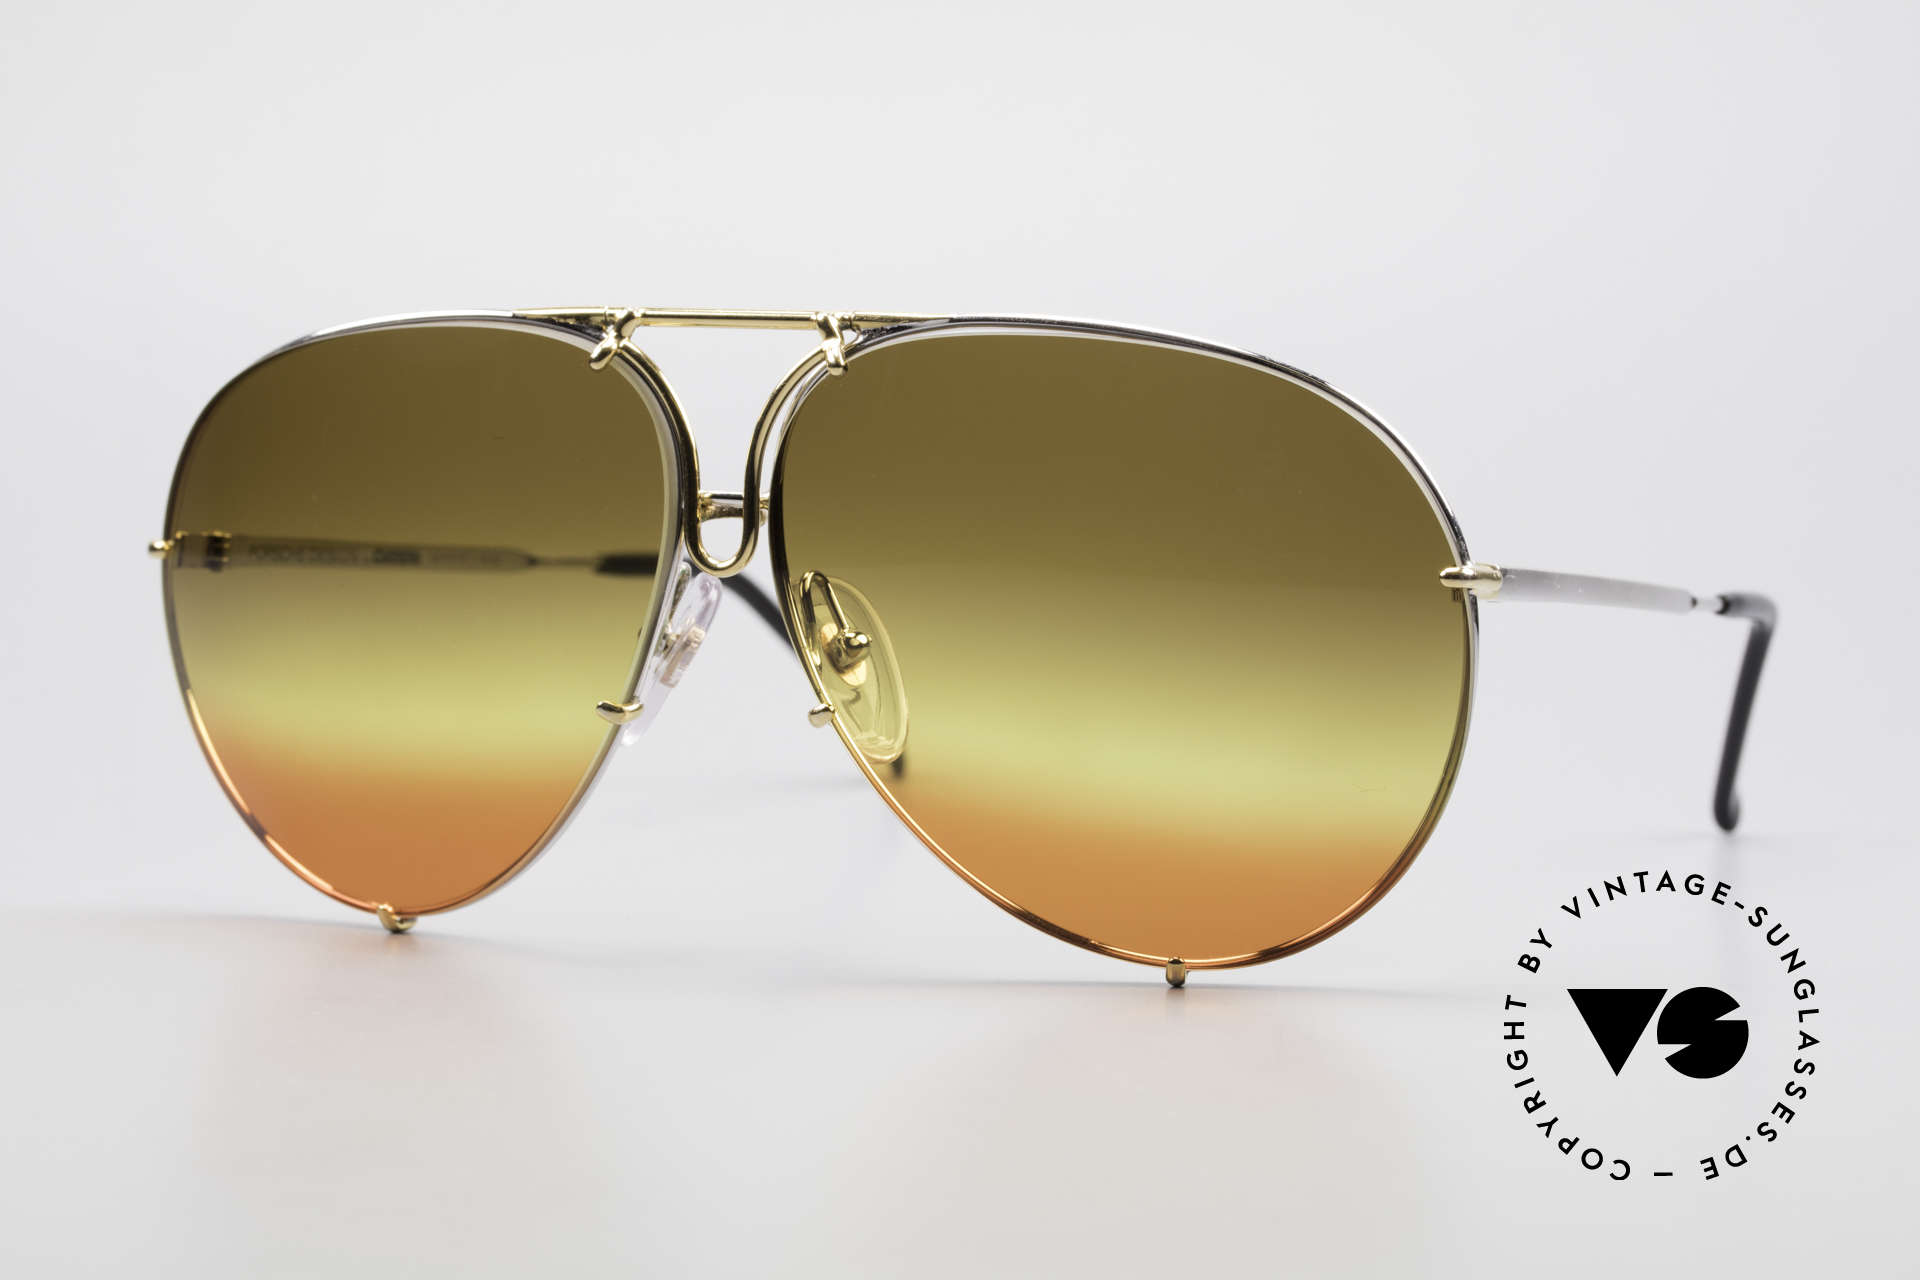 Porsche 5623 One Of A Kind 80's Customized, vintage Porsche Design by Carrera shades from 1987, Made for Men and Women